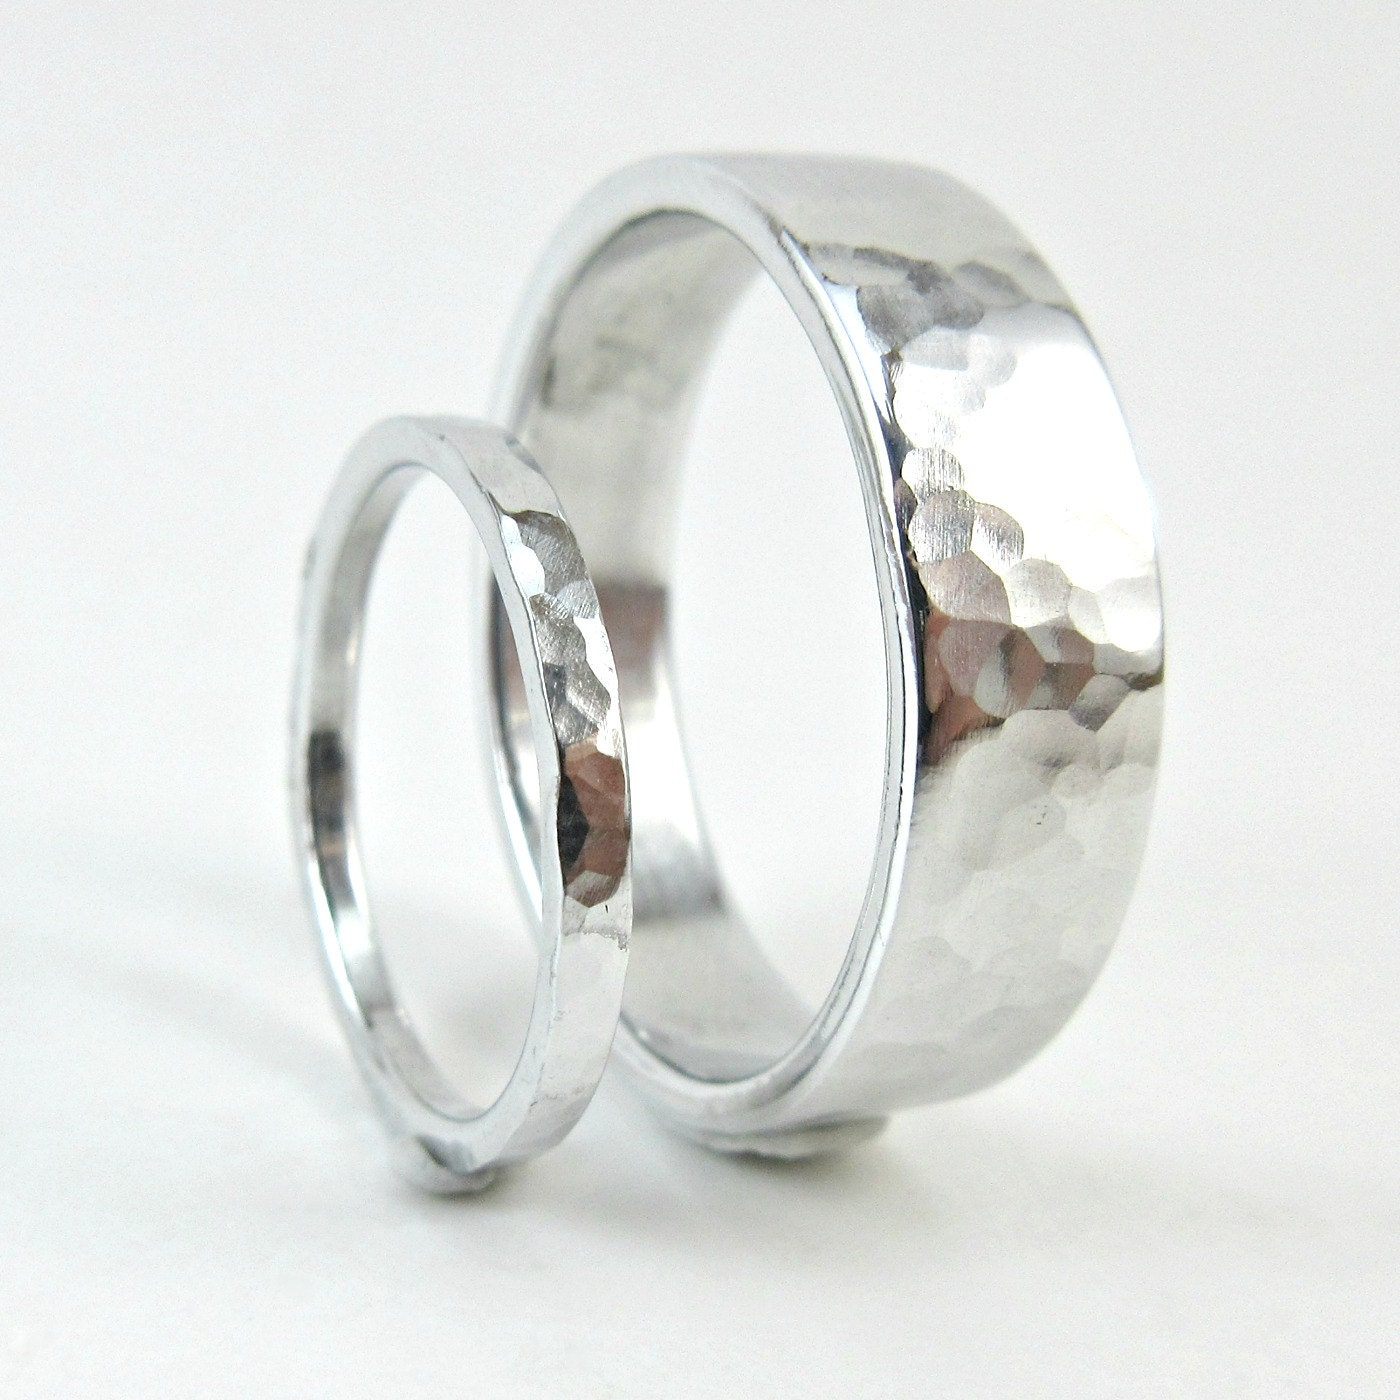 tabitha blog shop at shot screen a alternatives to traditional am ring the engagement rings